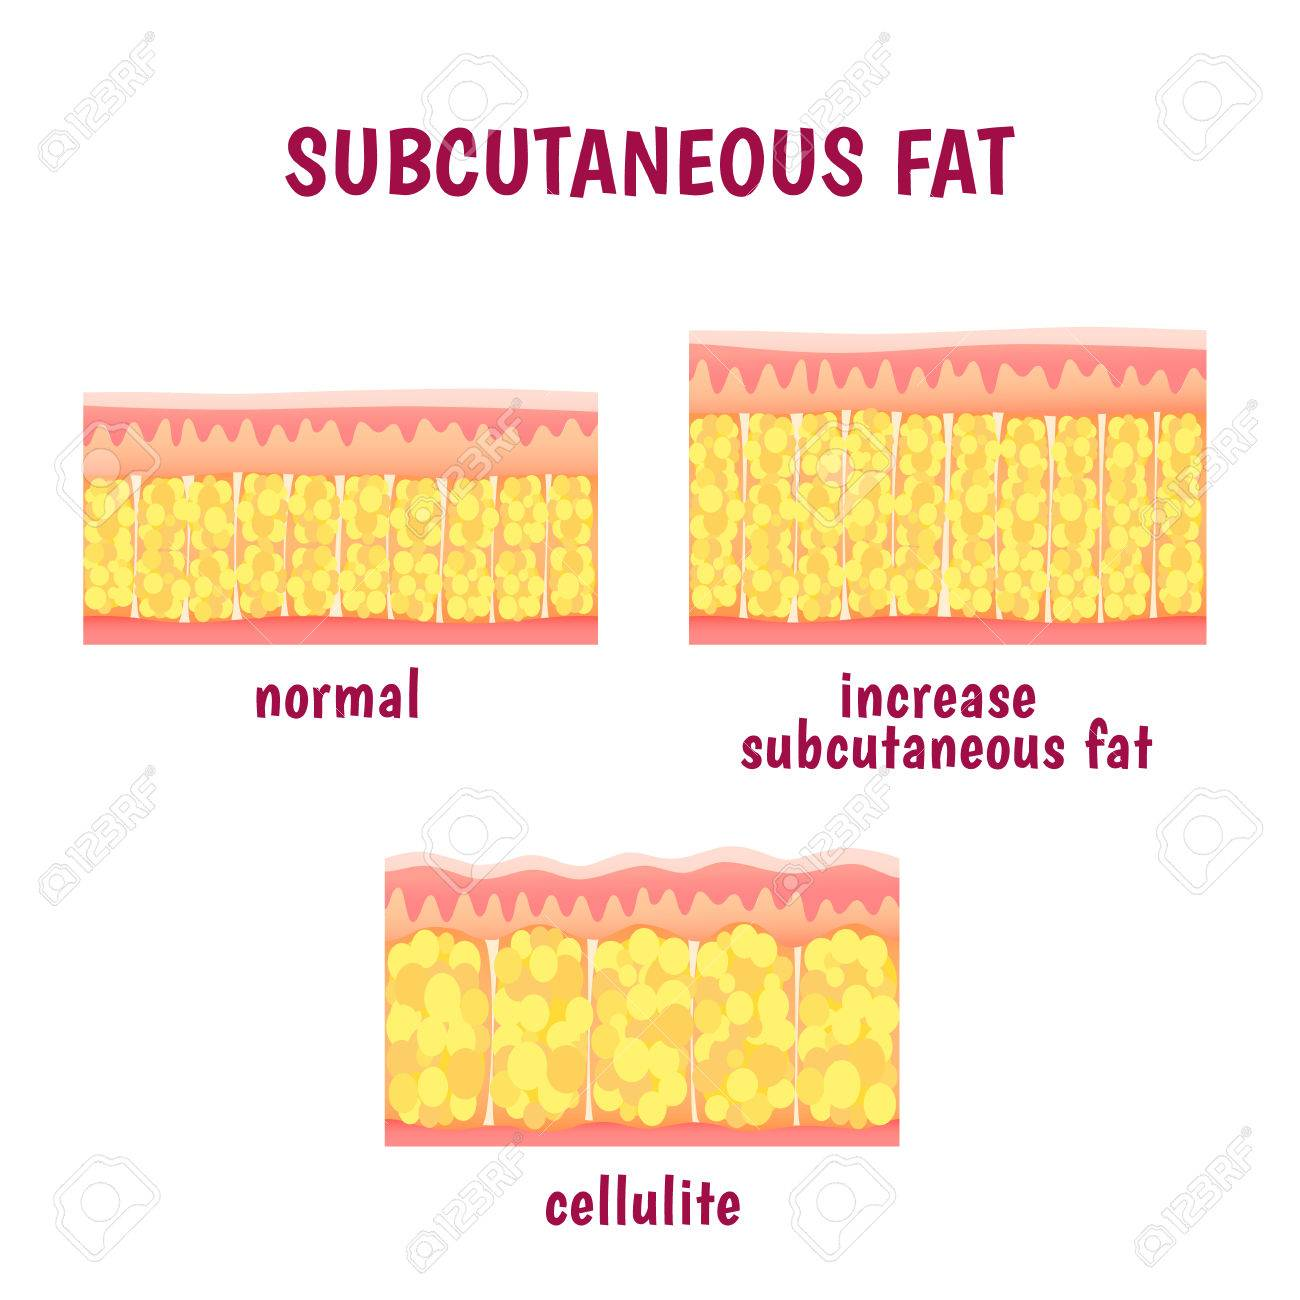 leather sectional layer of subcutaneous fat, cellulite scheme - 51630075